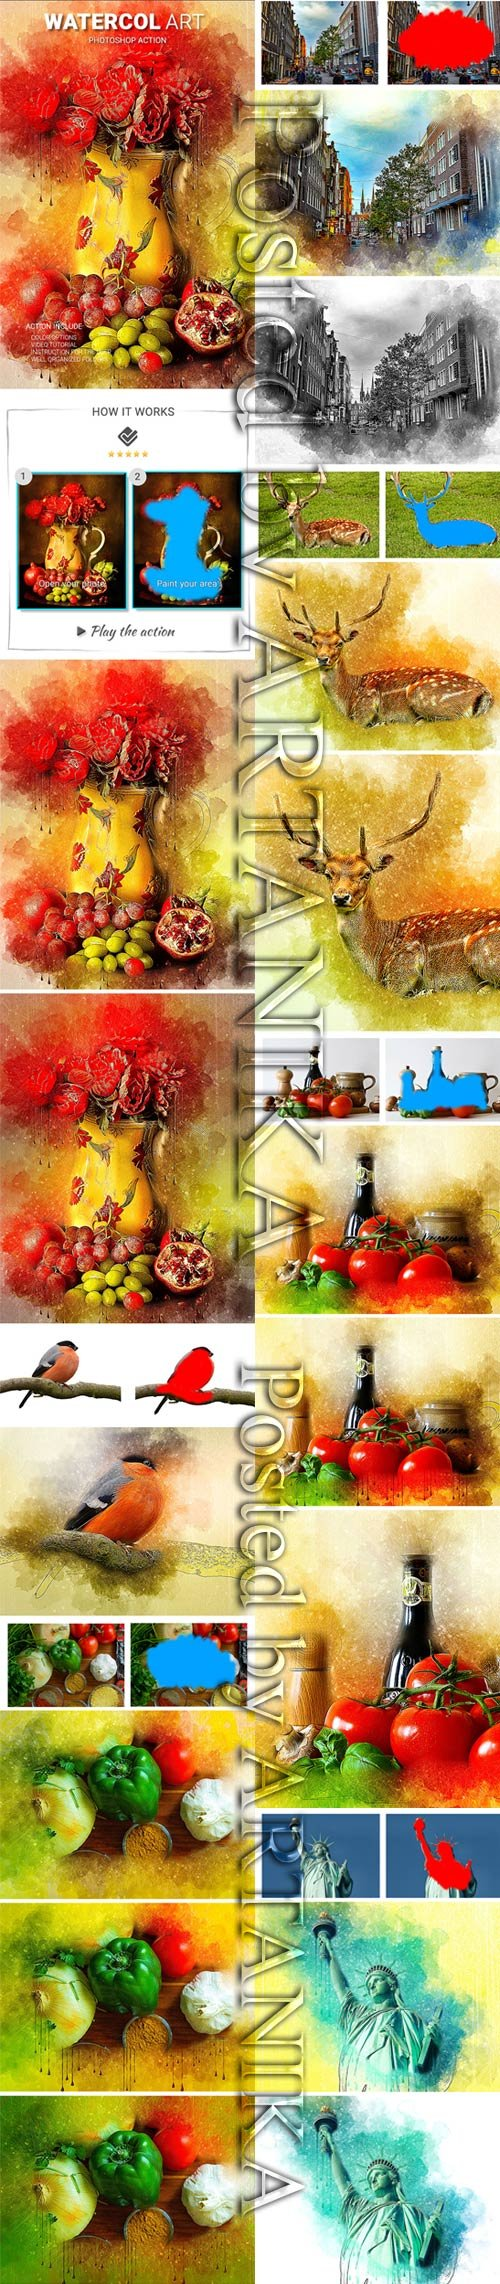 GraphicRiver - Watercol art Photoshop Action 21881701